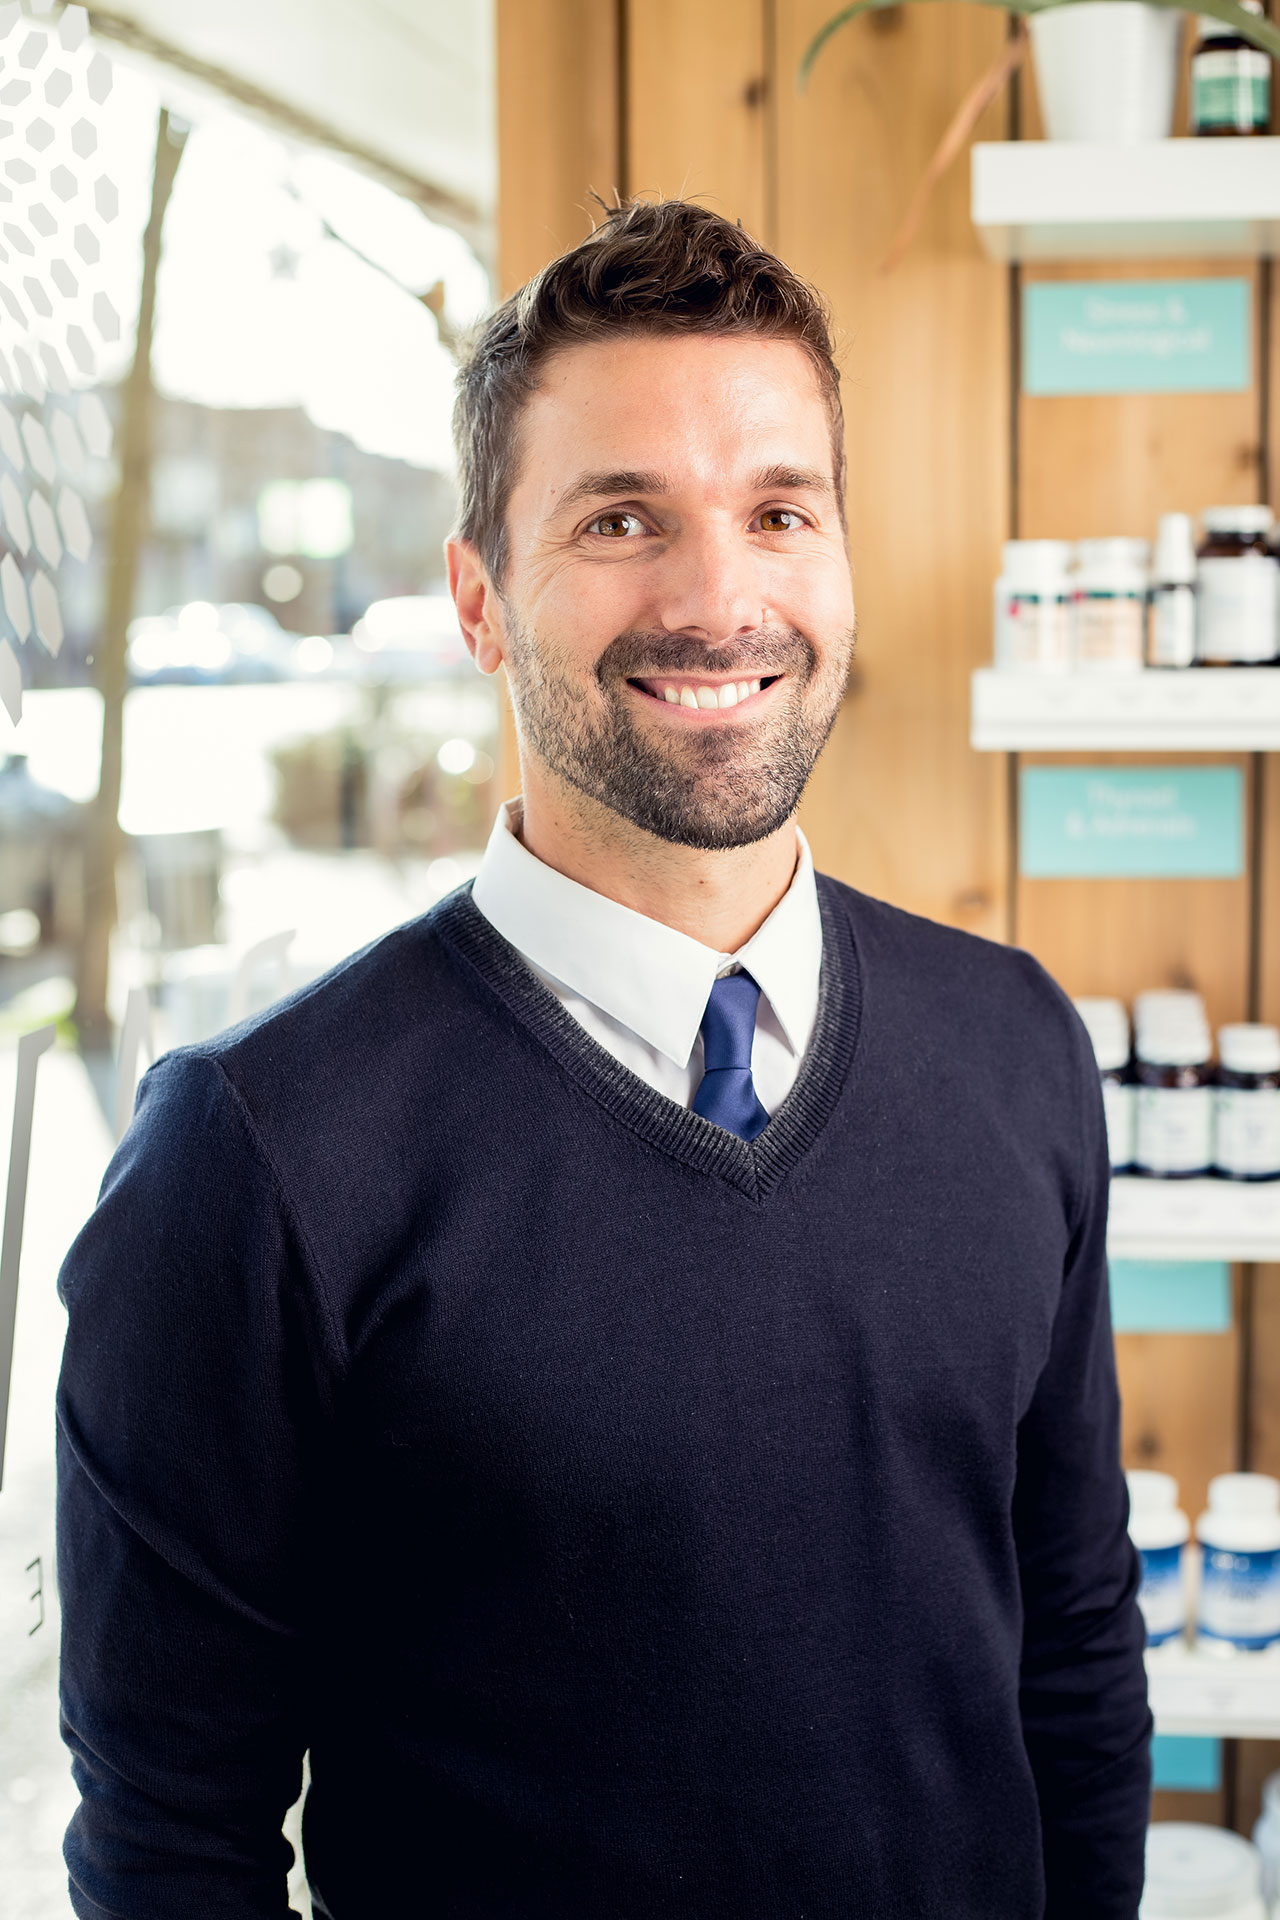 Vancouver Naturopathic Welness and Health Lifestyle | Divine Elements